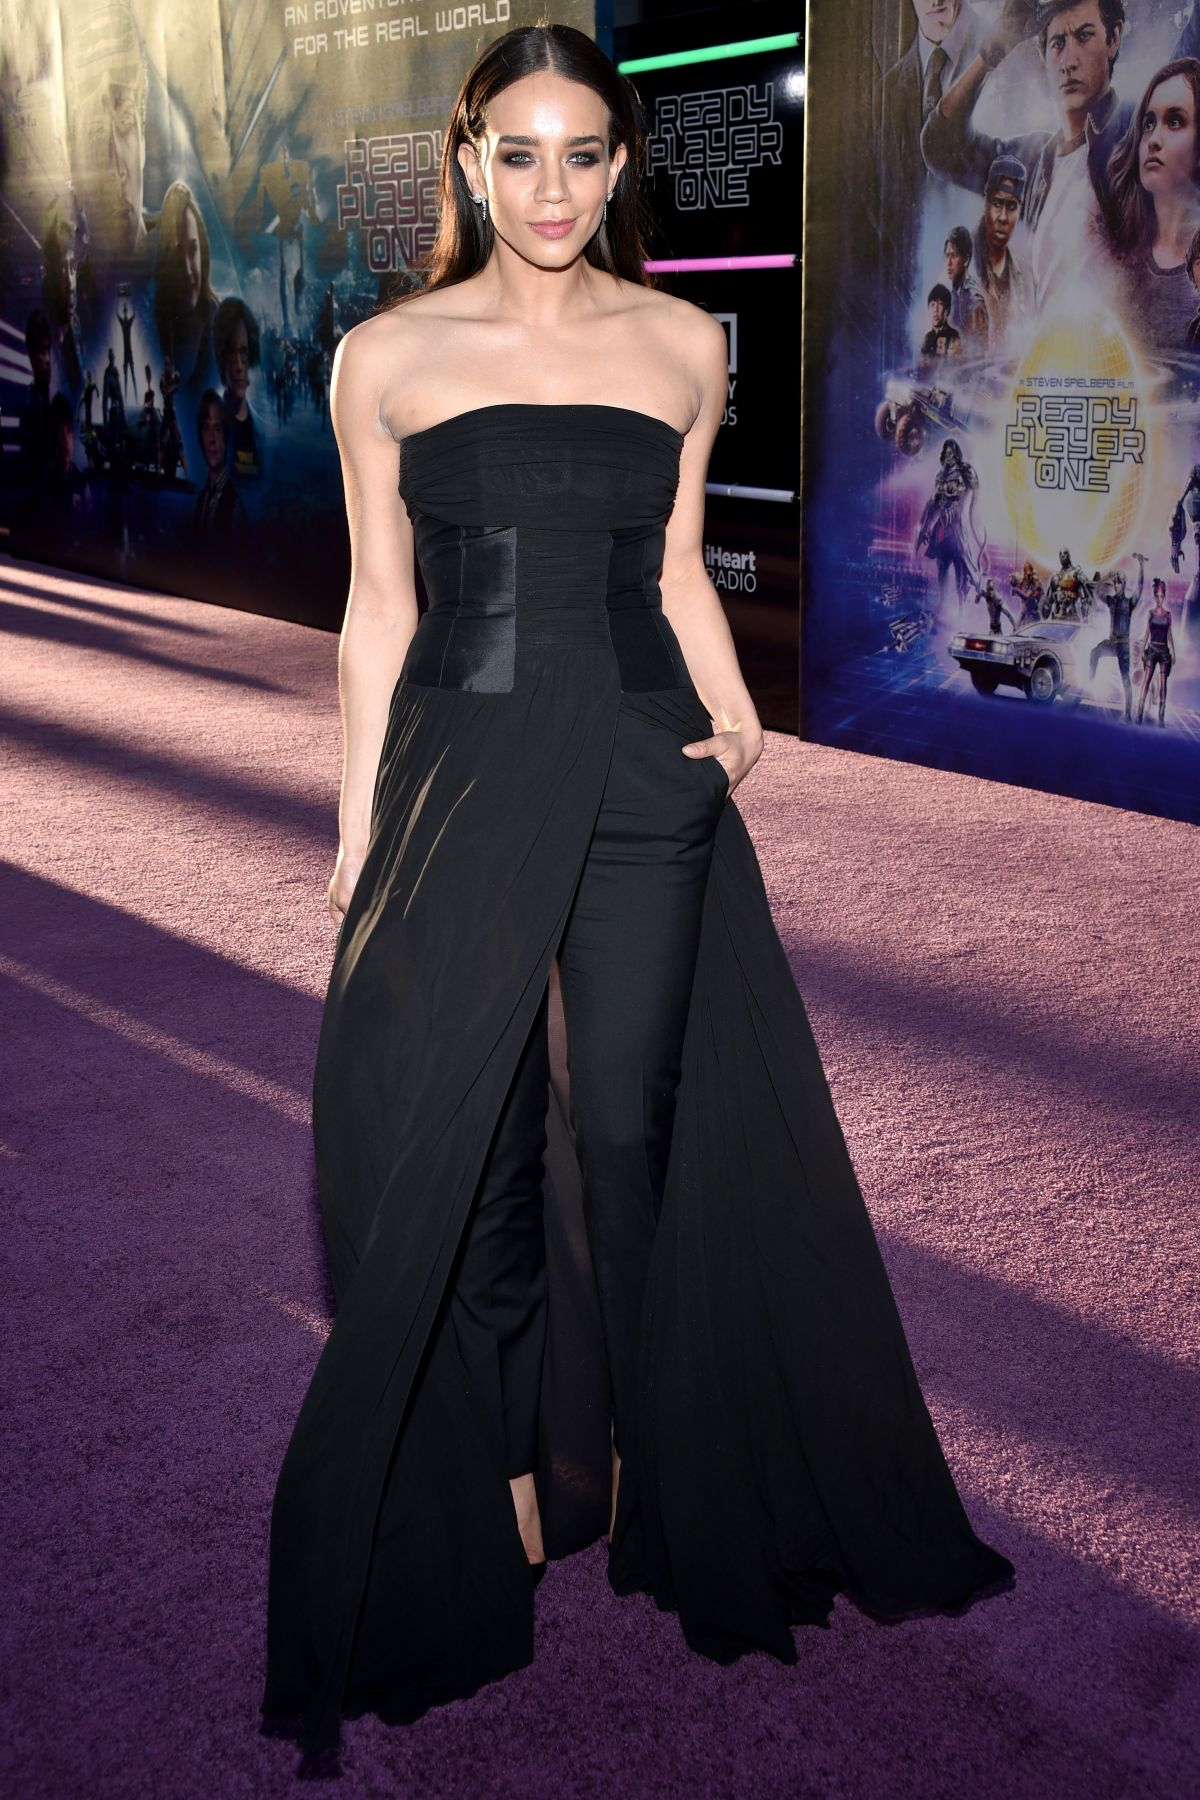 Ready Player One Movie further Hannah John Kamen At Ready Player One Premiere At Dolby Theatre In Hollywood further The Walking Dead Tercera Temporada Dvd1 additionally Pato Aventuras La Pelicula El Tesoro De La L ara Perdida Dvd as well respond. on ready player one